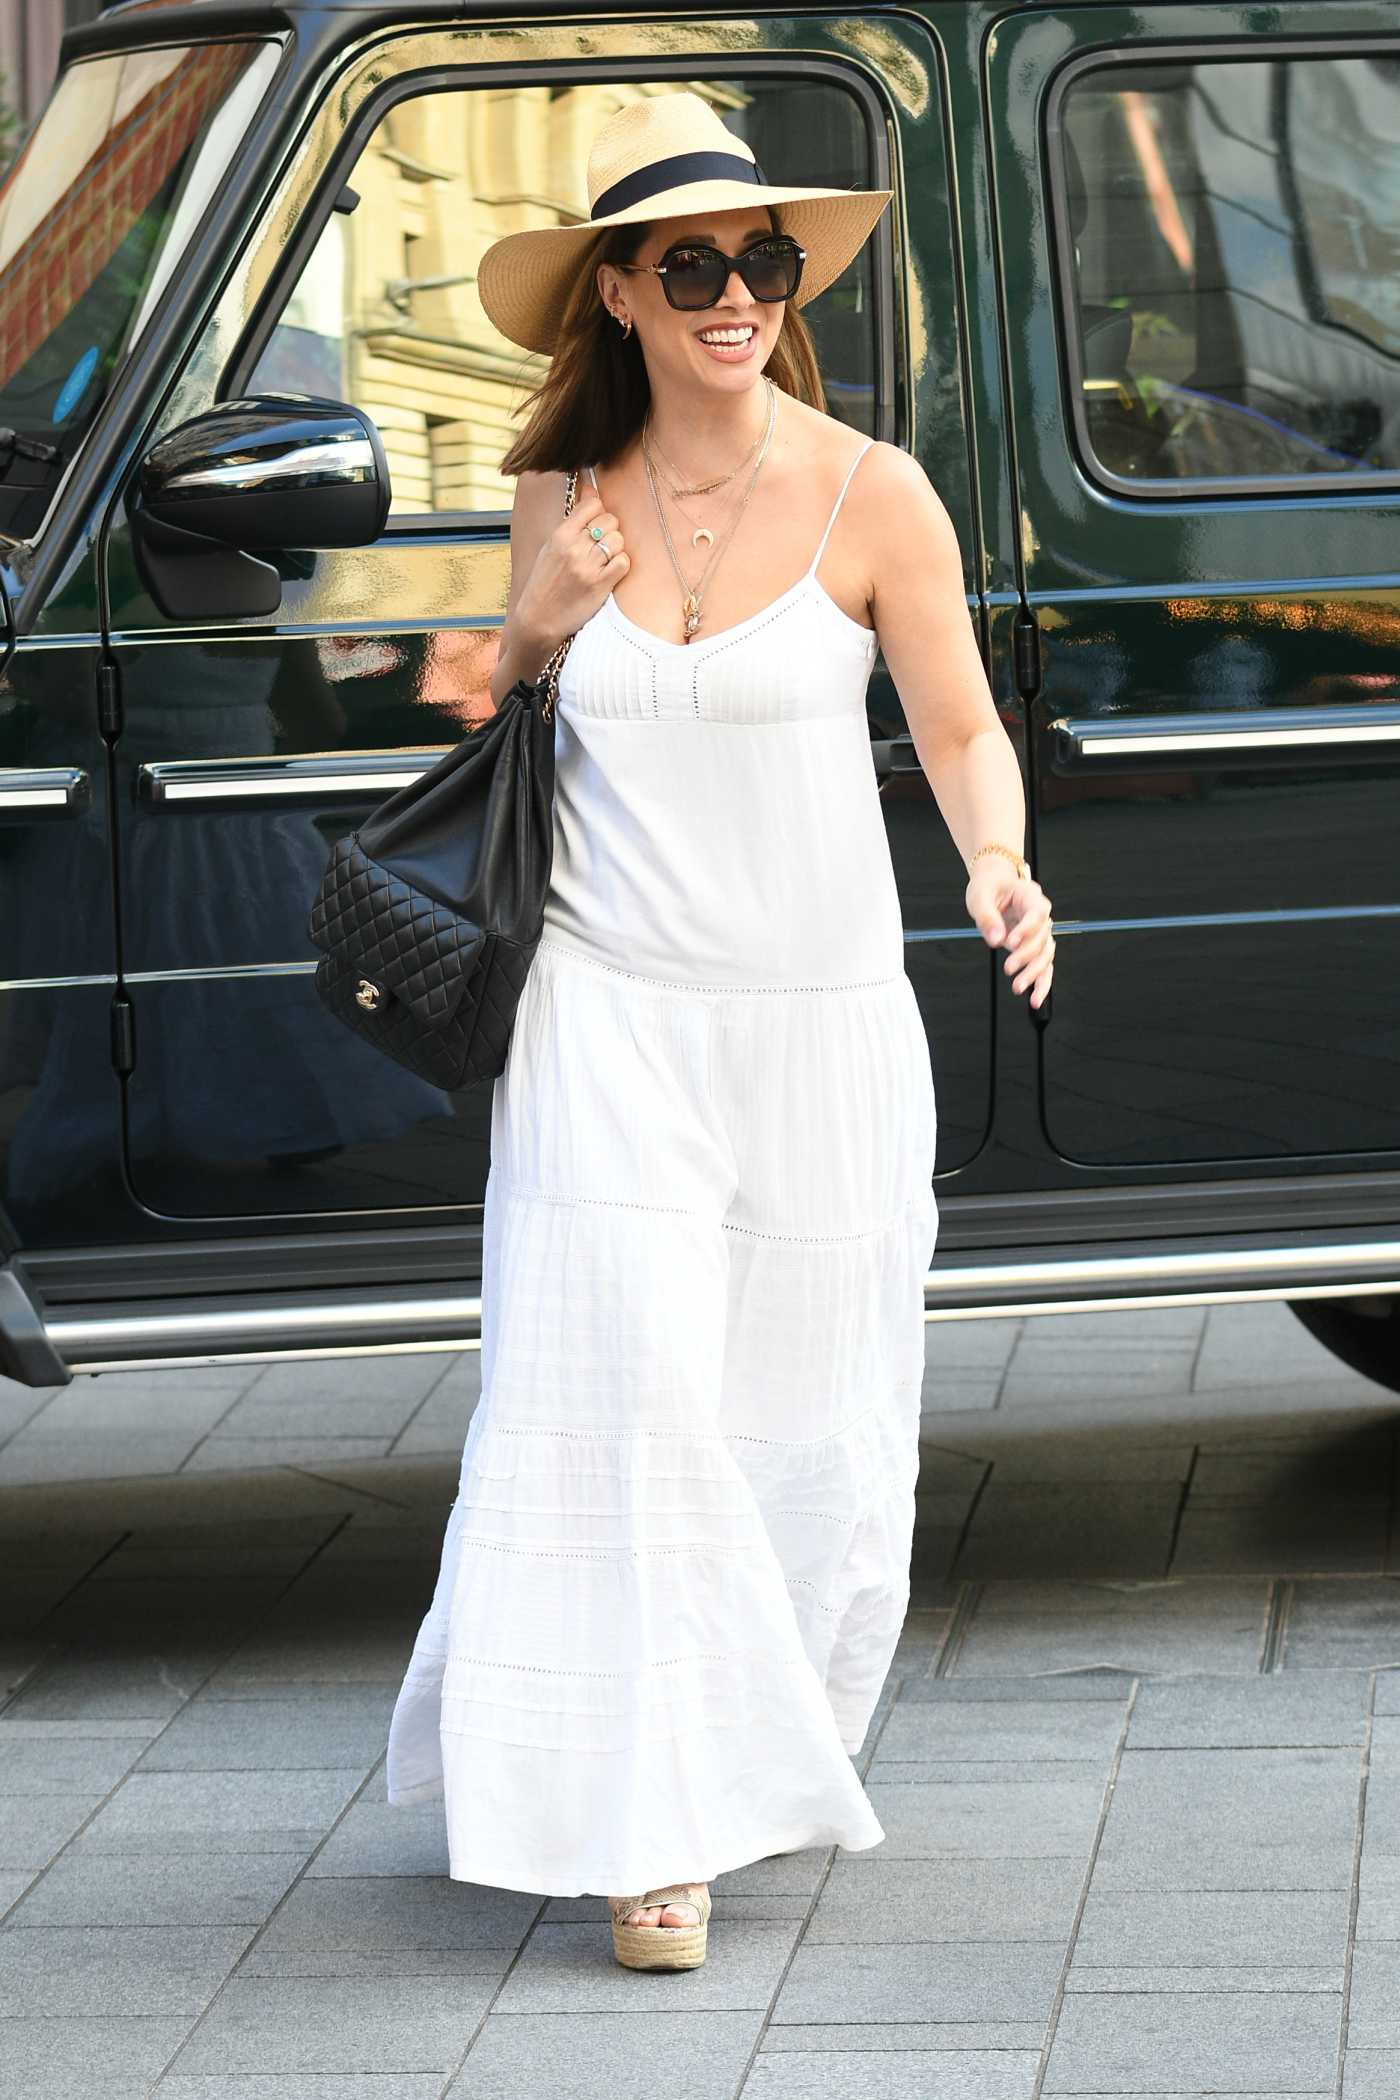 Myleene Klass in a White Summer Dress Arrives at the Global Radio Studios in London 09/05/2020